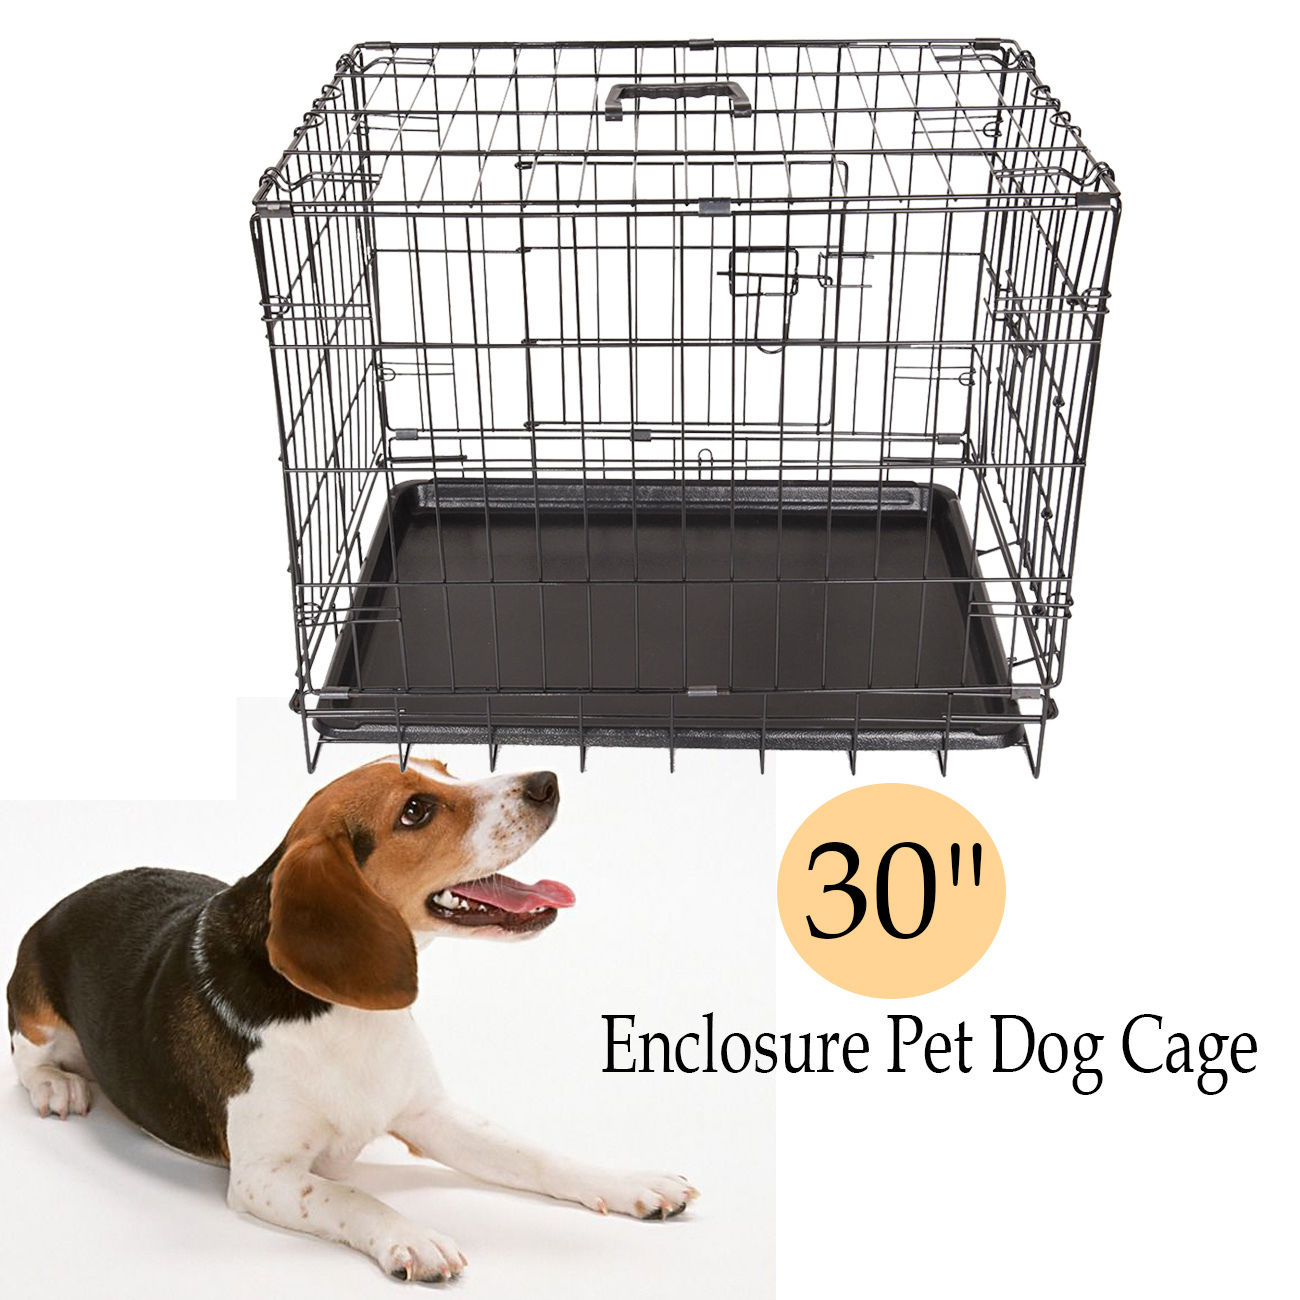 Dog Cage Crates Puppy Small Medium Large Pet Carrier Training Folding Metal Cage pet carrier bag for cat dog medium size brown